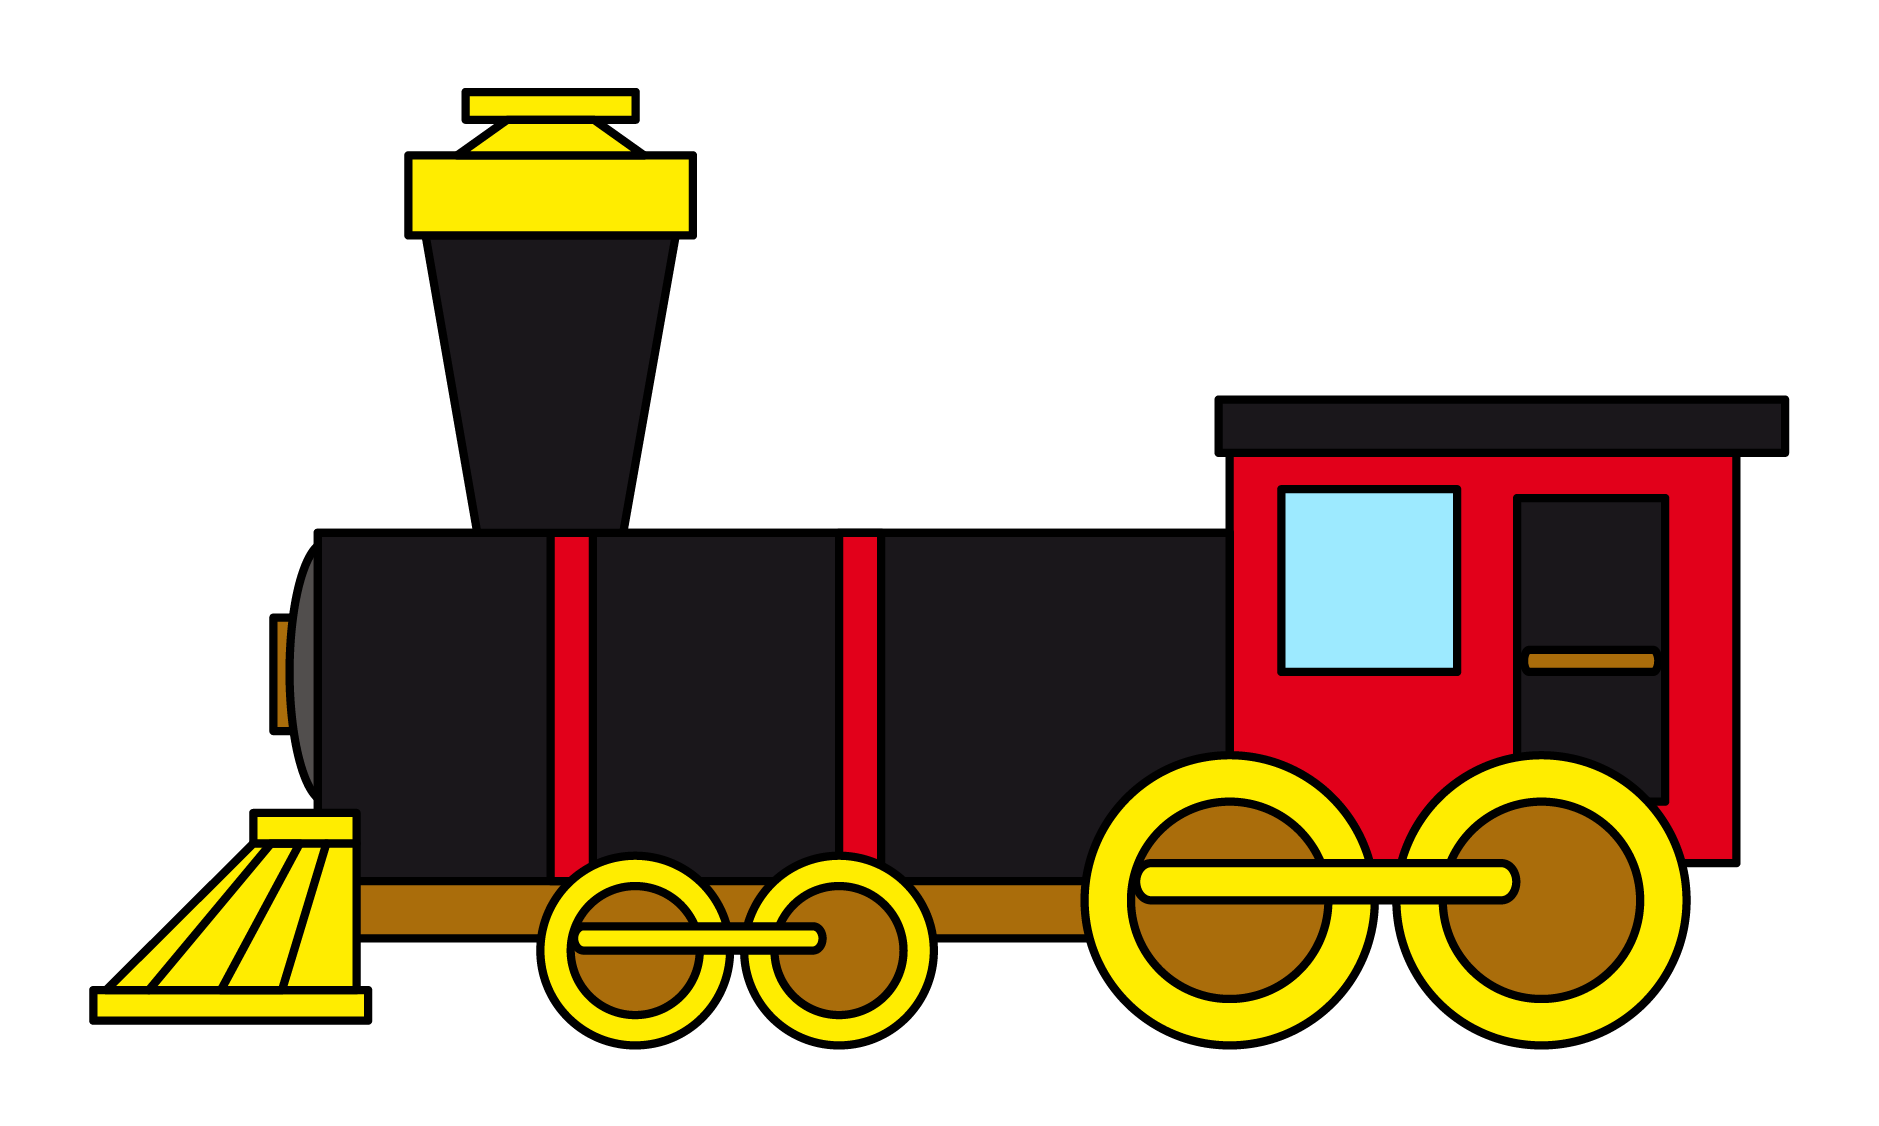 Bell clipart train. Free engine cliparts download